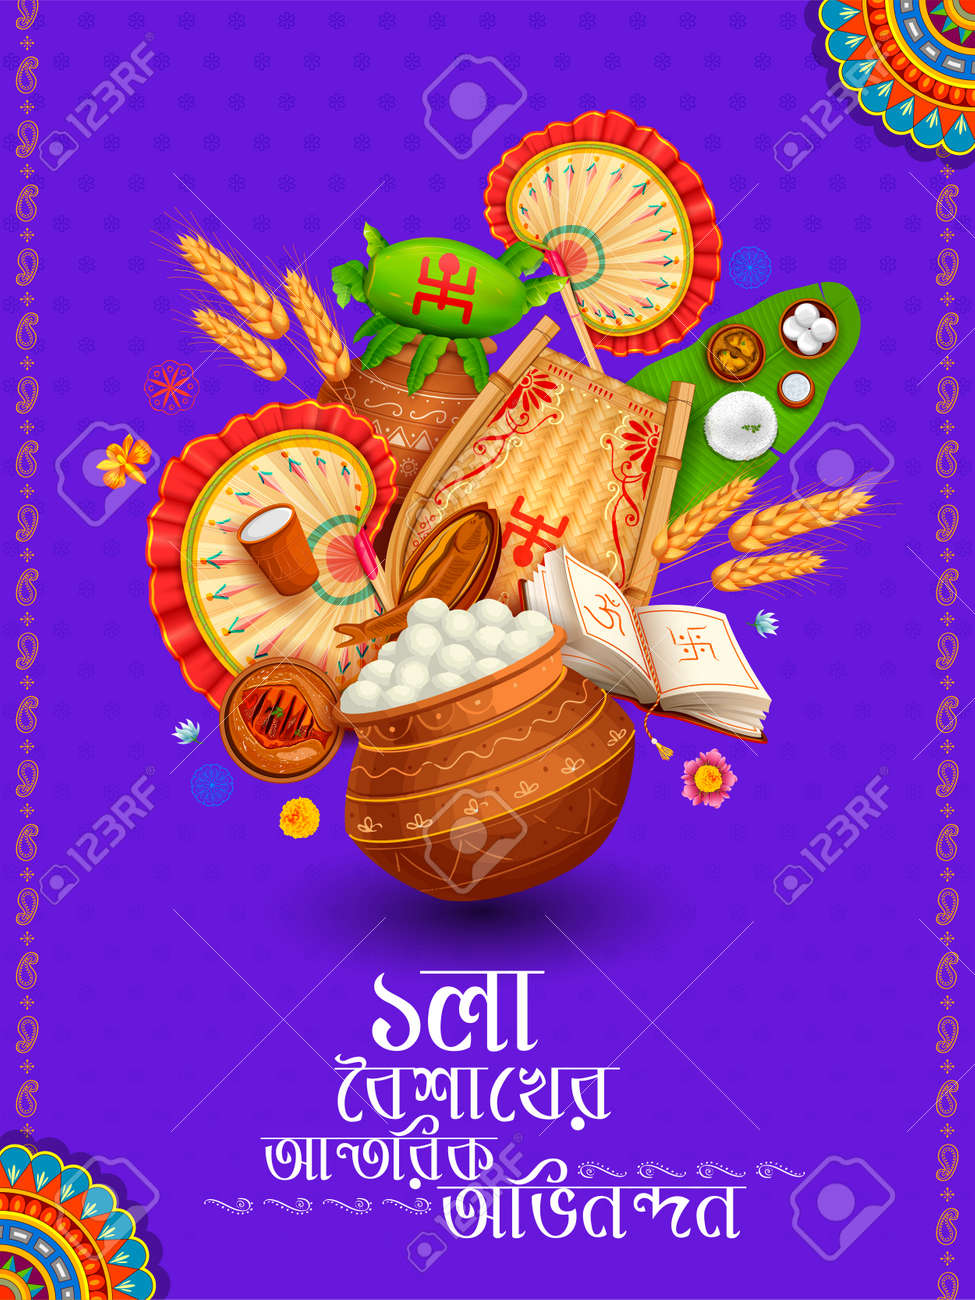 Greeting background with bengali text subho nababarsha antarik greeting background with bengali text subho nababarsha antarik abhinandan meaning heartiest wishing for happy new year m4hsunfo